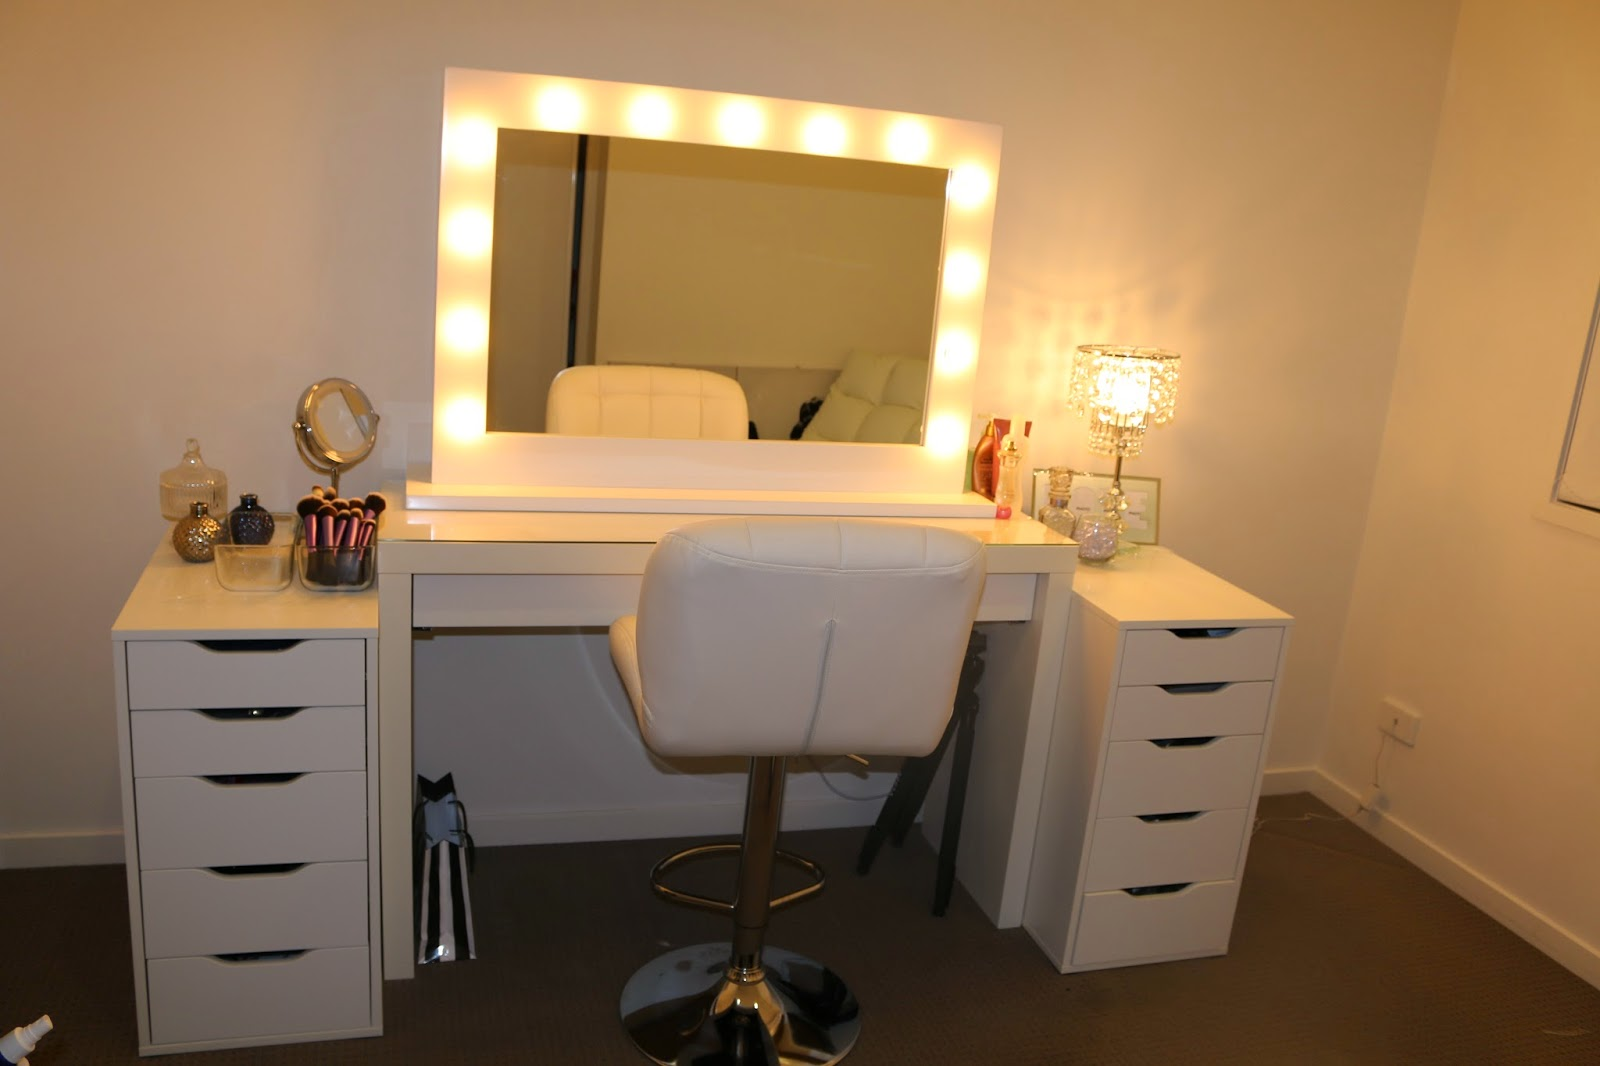 Malm Dressing Table Rogue Hair Extensions: Ikea Makeup Vanity & Hollywood Lights!